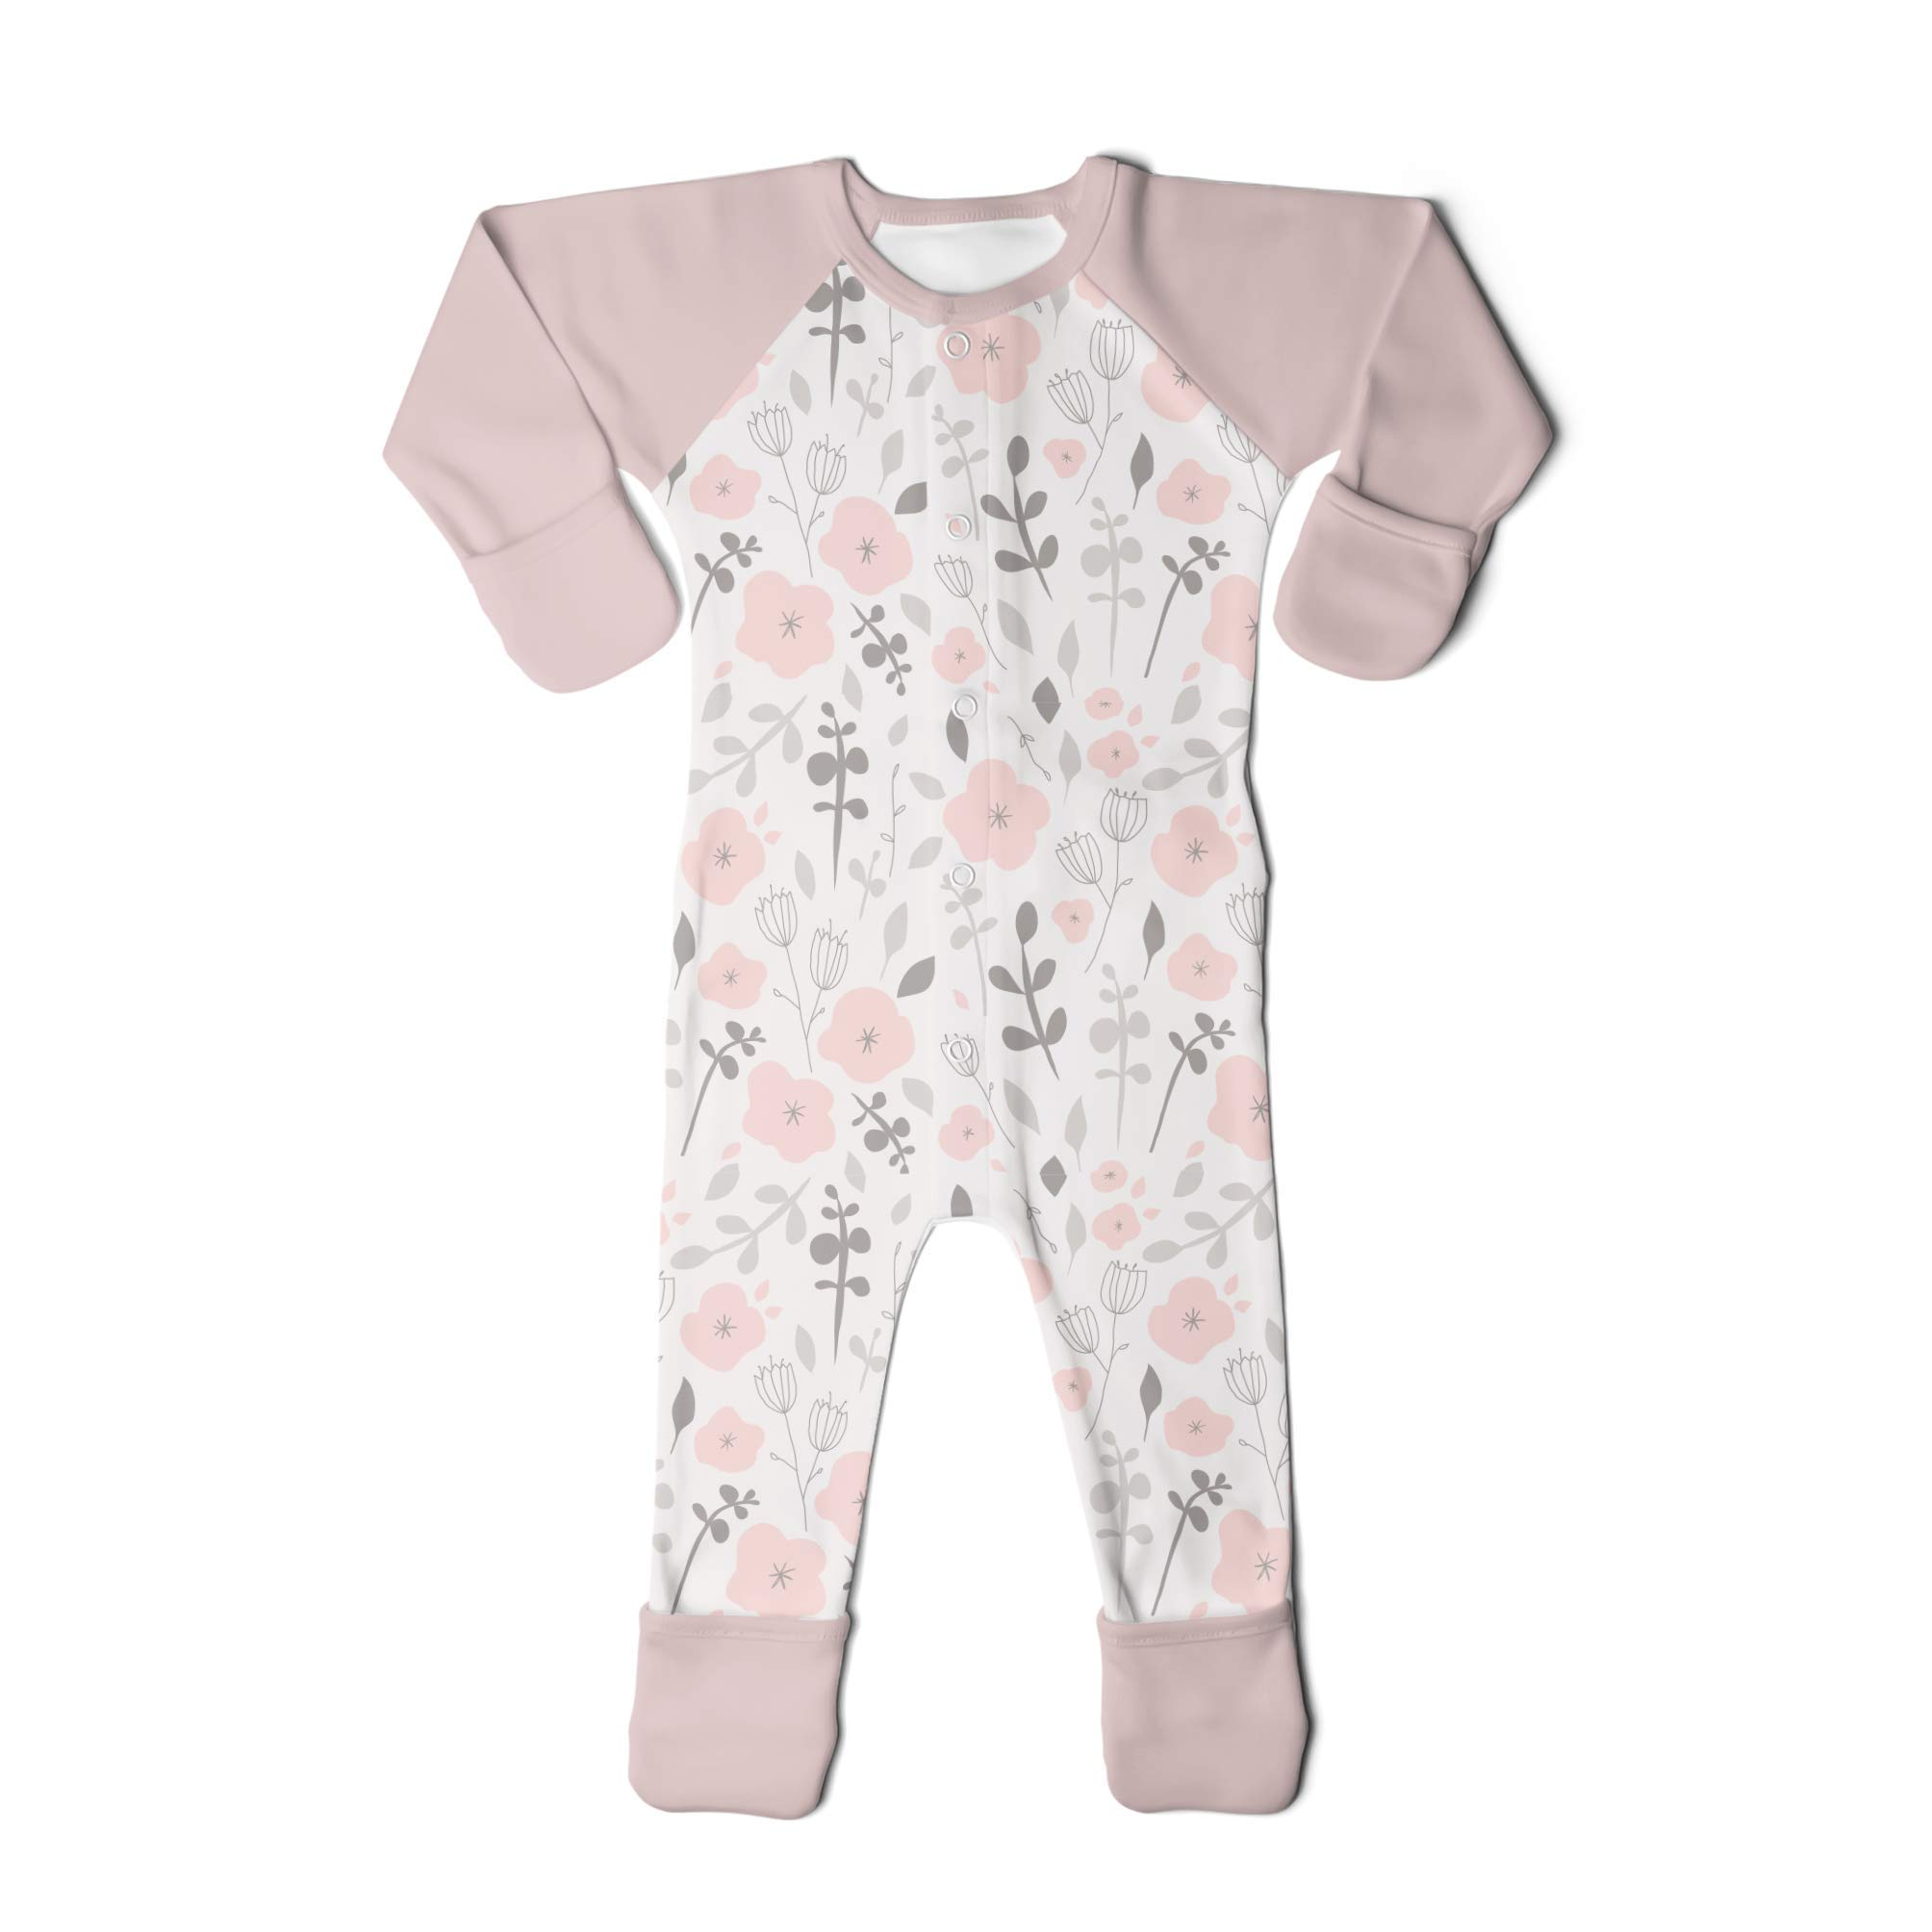 goumikids Goumi'all, Smart Adjustable Footie Baby Pajamas Made with Soft, Organic Material (0-3 Months, Enchanted Garden)